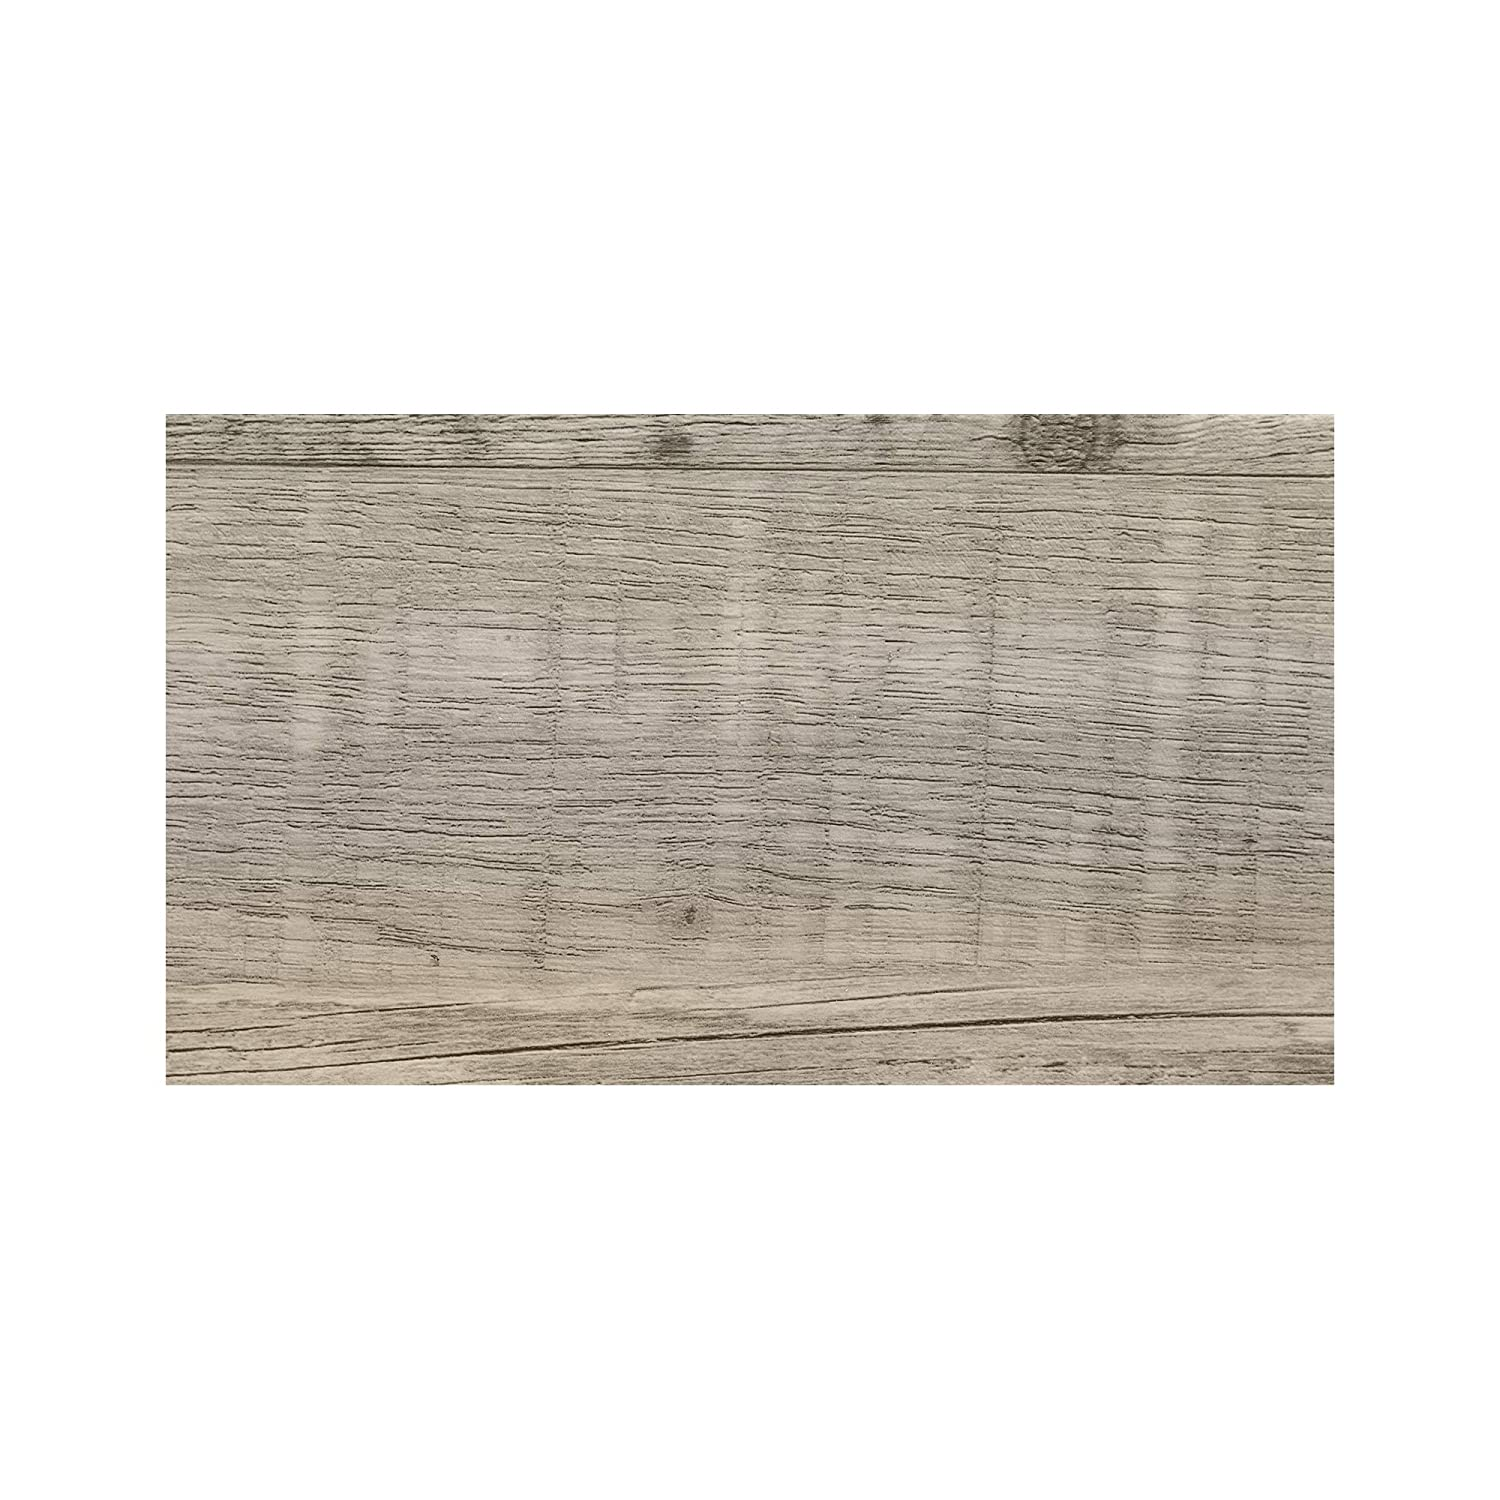 Elegant Vinyl Plank Flooring from The Ascent Collection by Finesse Floors Interlocking Floating Planks in Appalachia 21.42 Square Feet of Flooring Per Carton